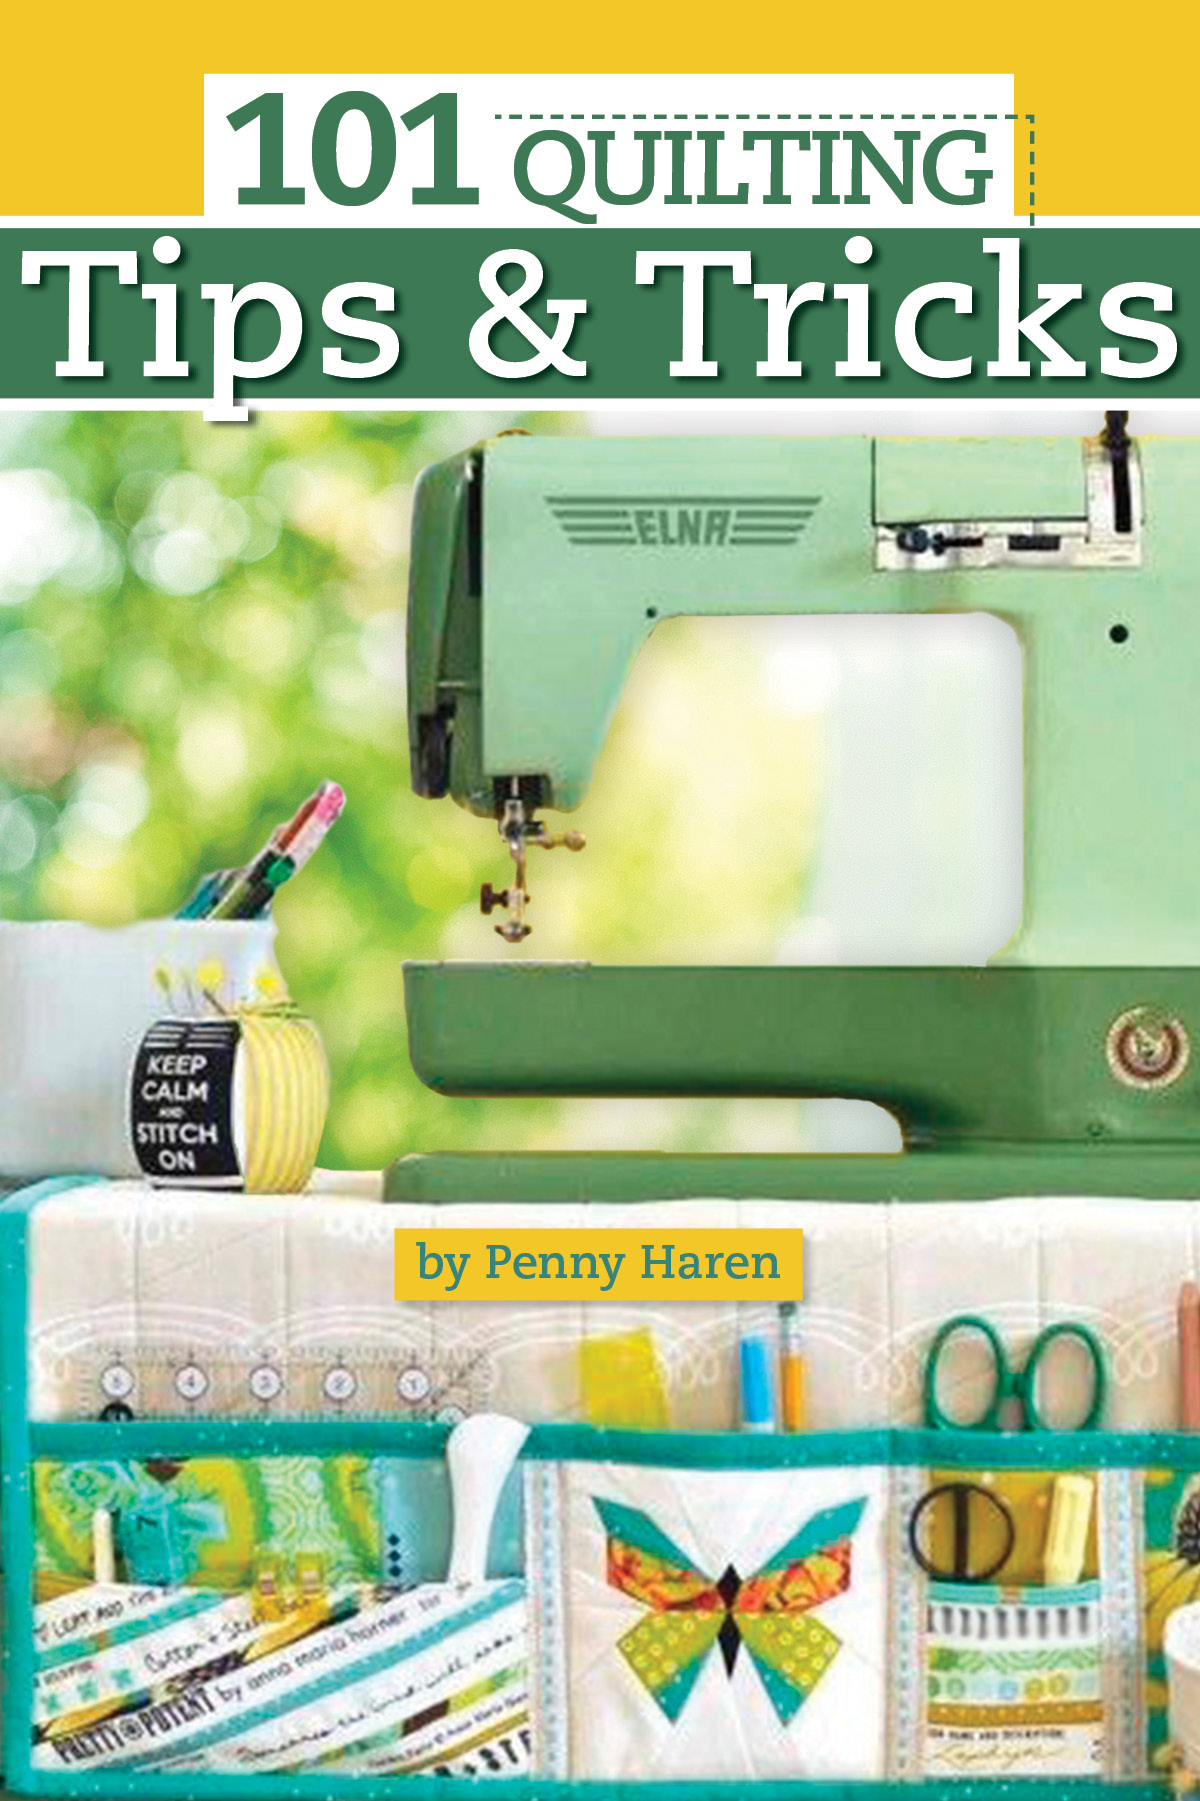 101 Quilting Tips & Tricks Pocket Guide